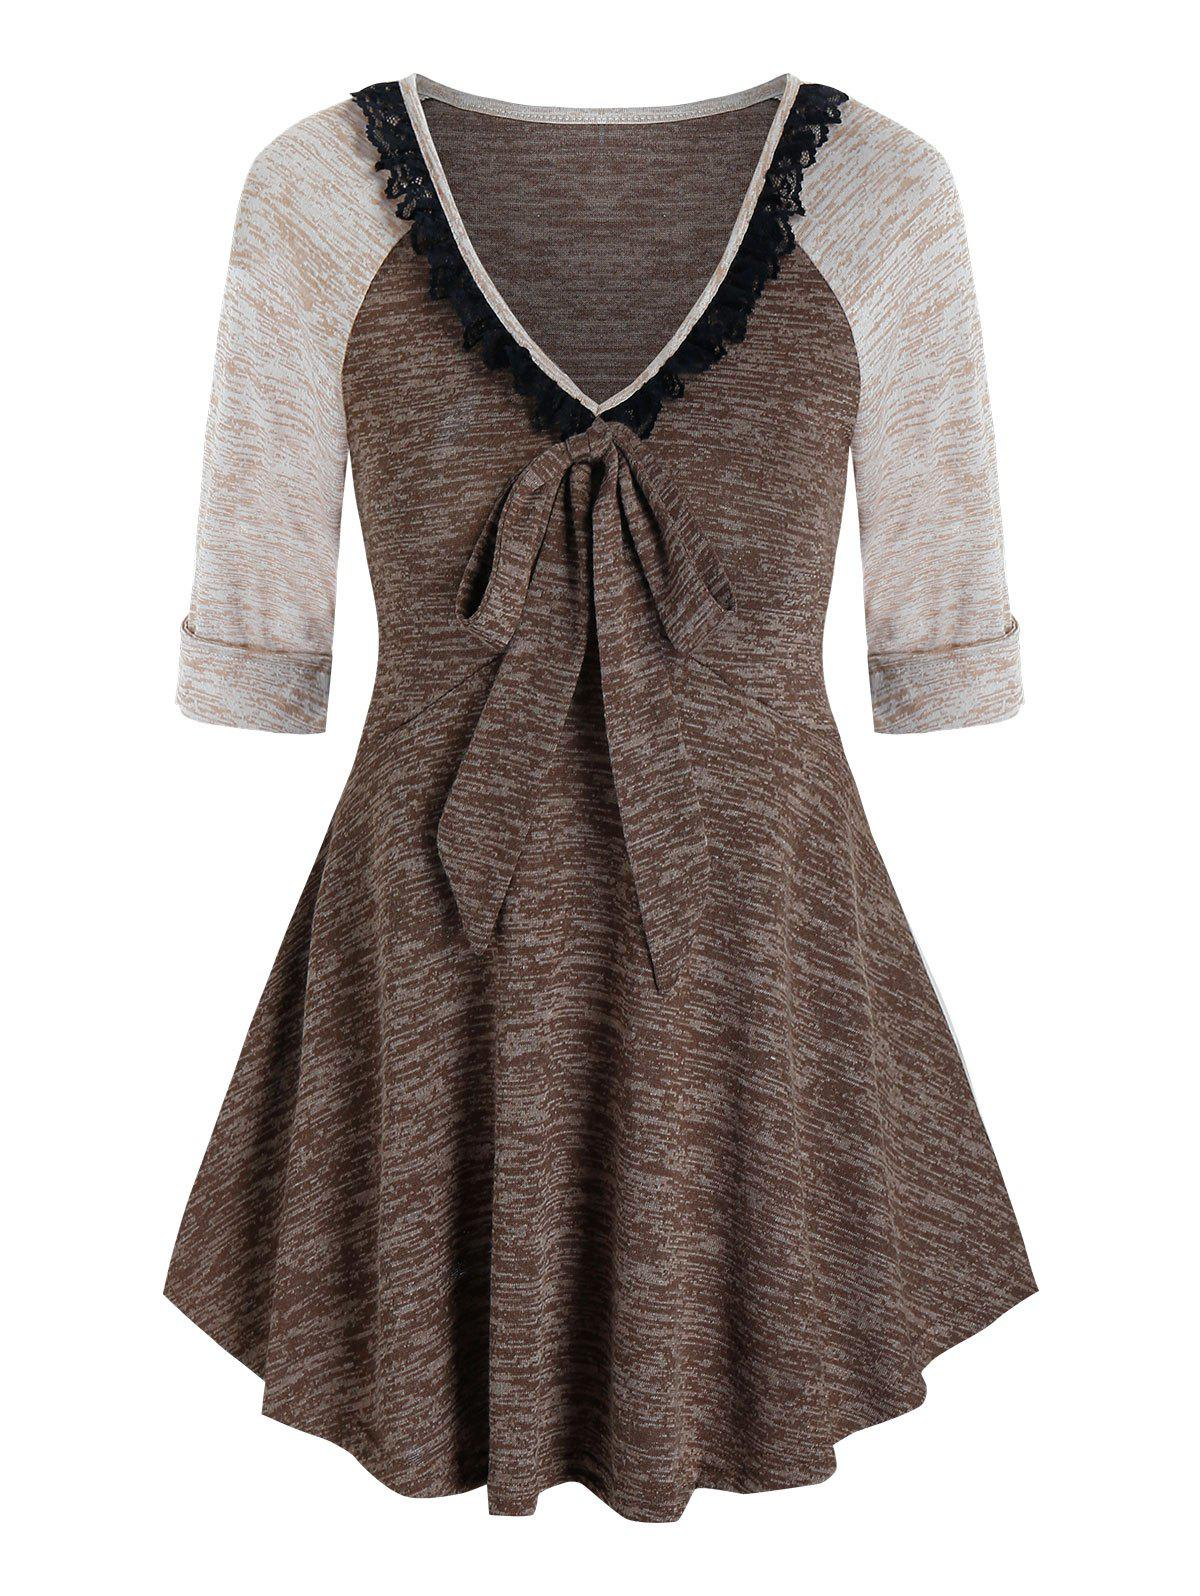 Outfits Contrast Space Dye Print Lace Insert Bowknot T-shirt